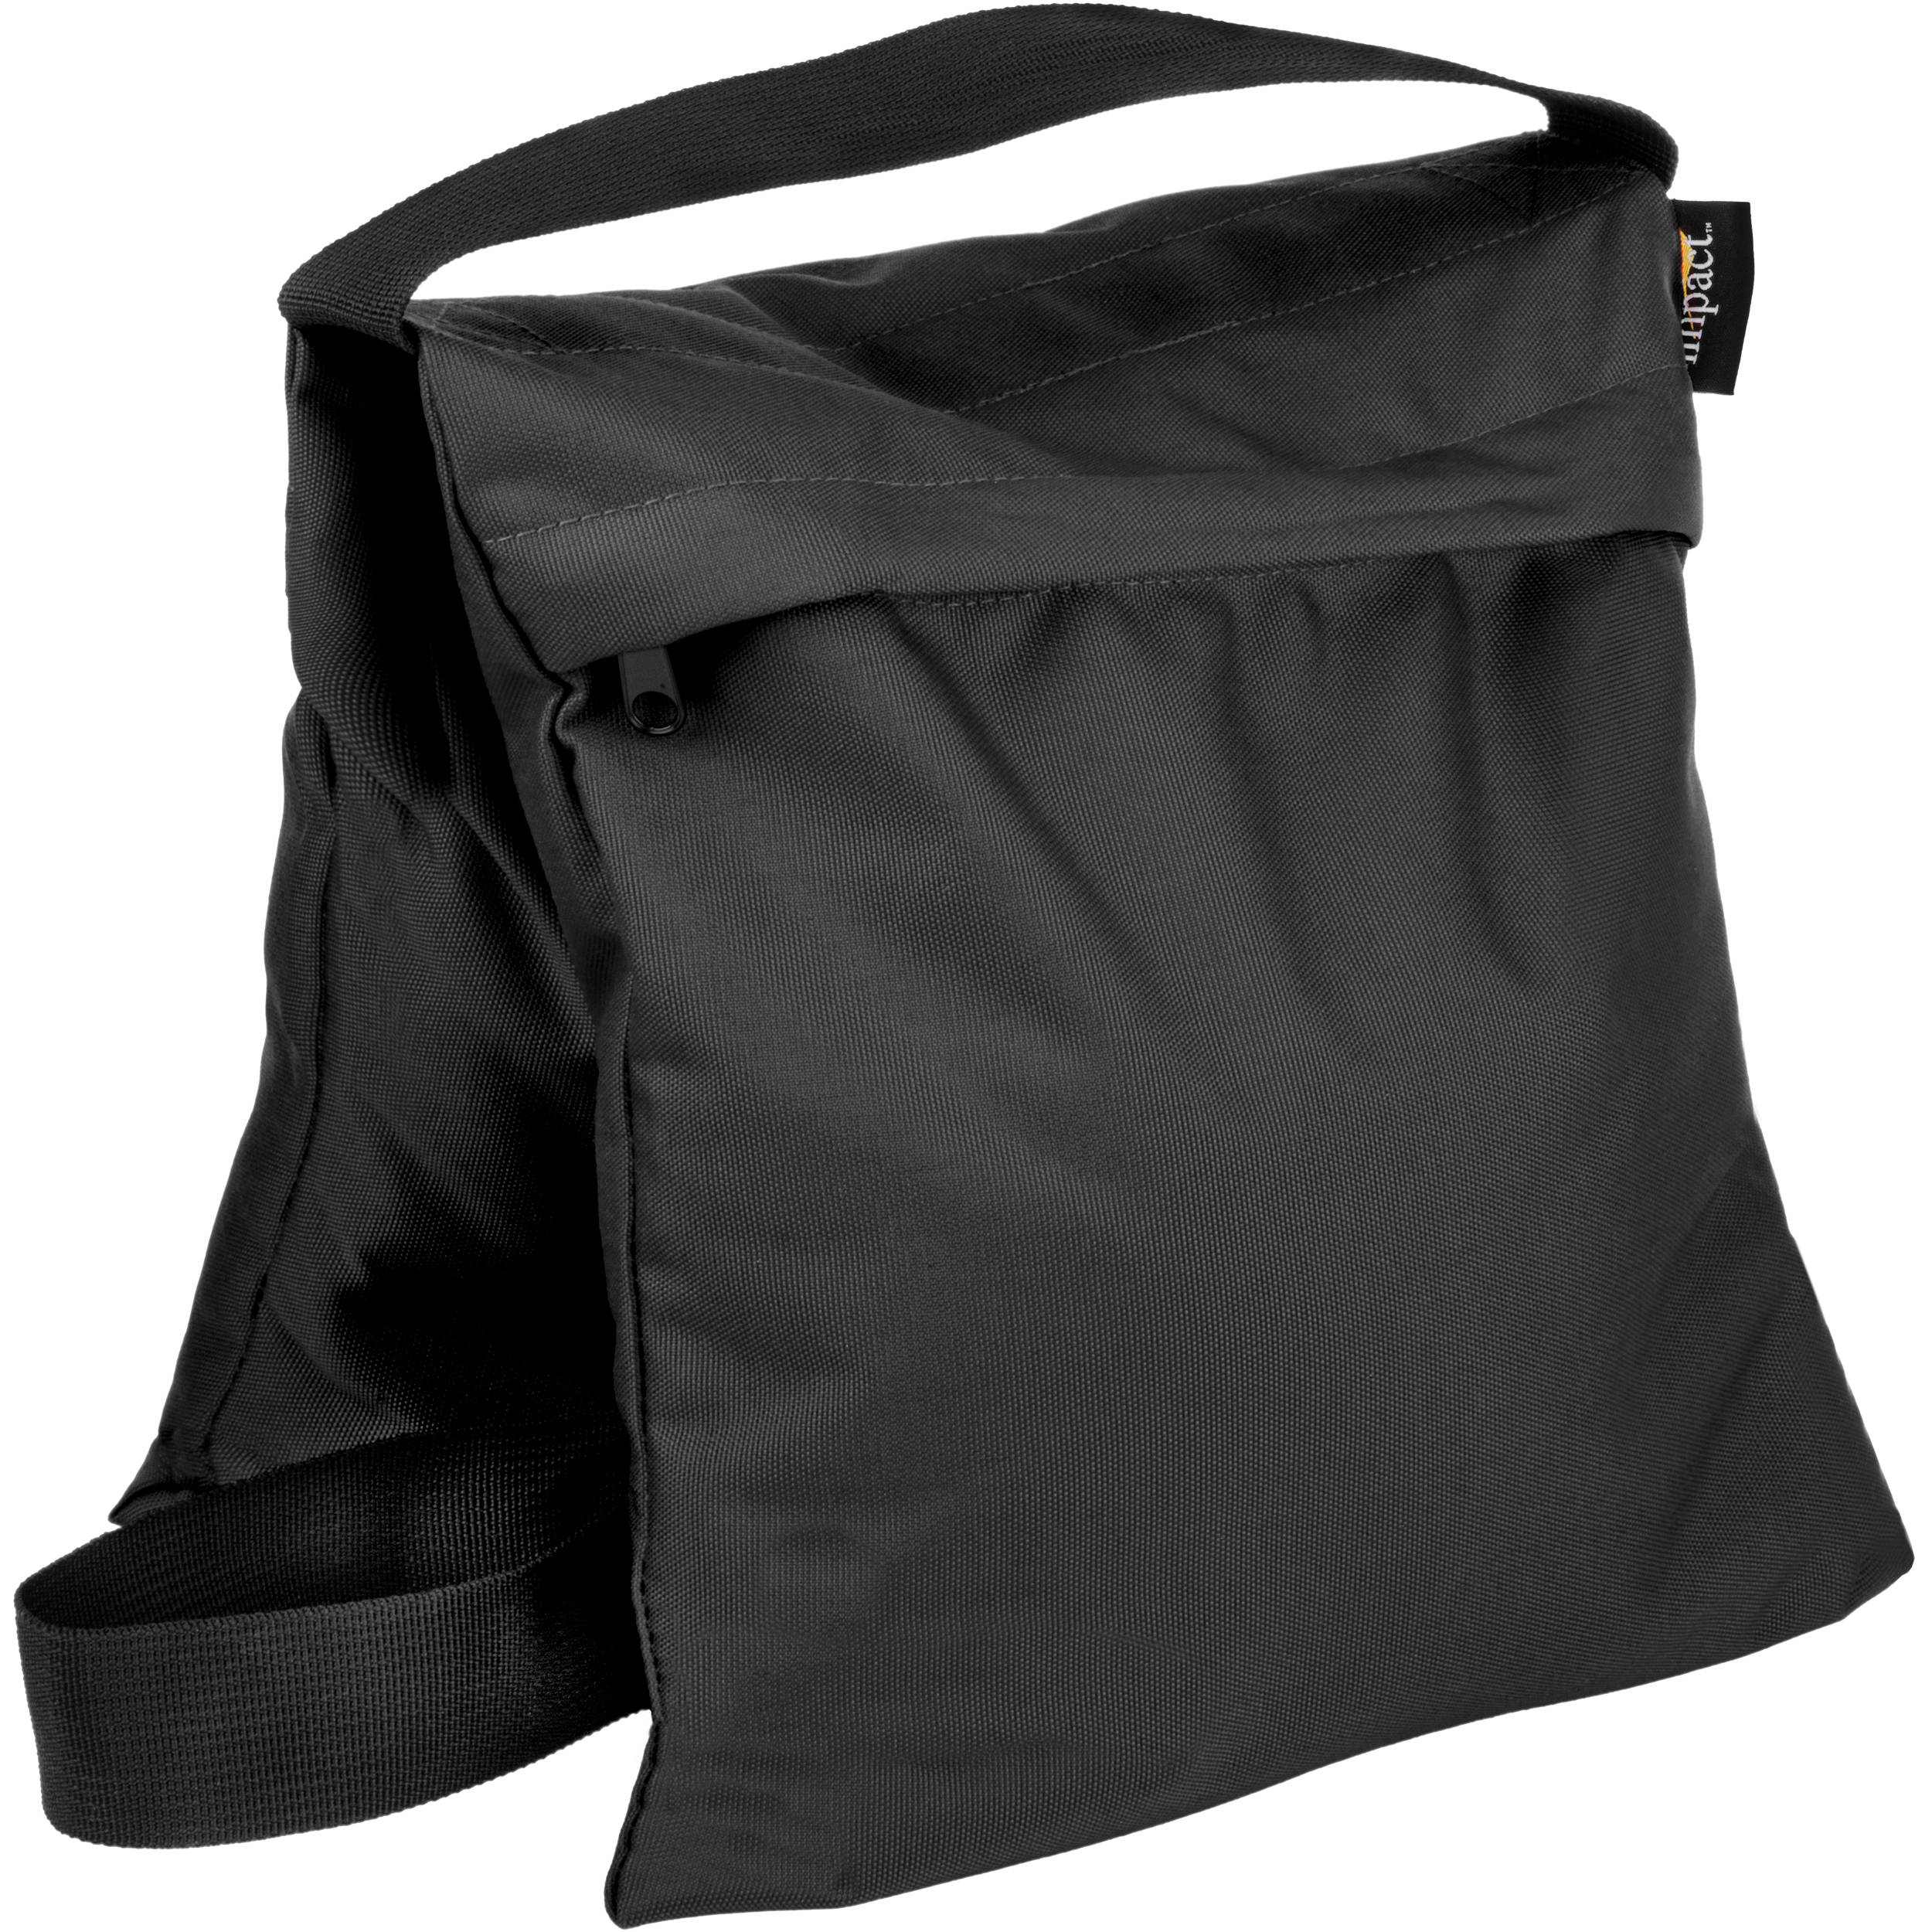 6ea88c7a36f Impact Filled Saddle Sandbag (25 lb